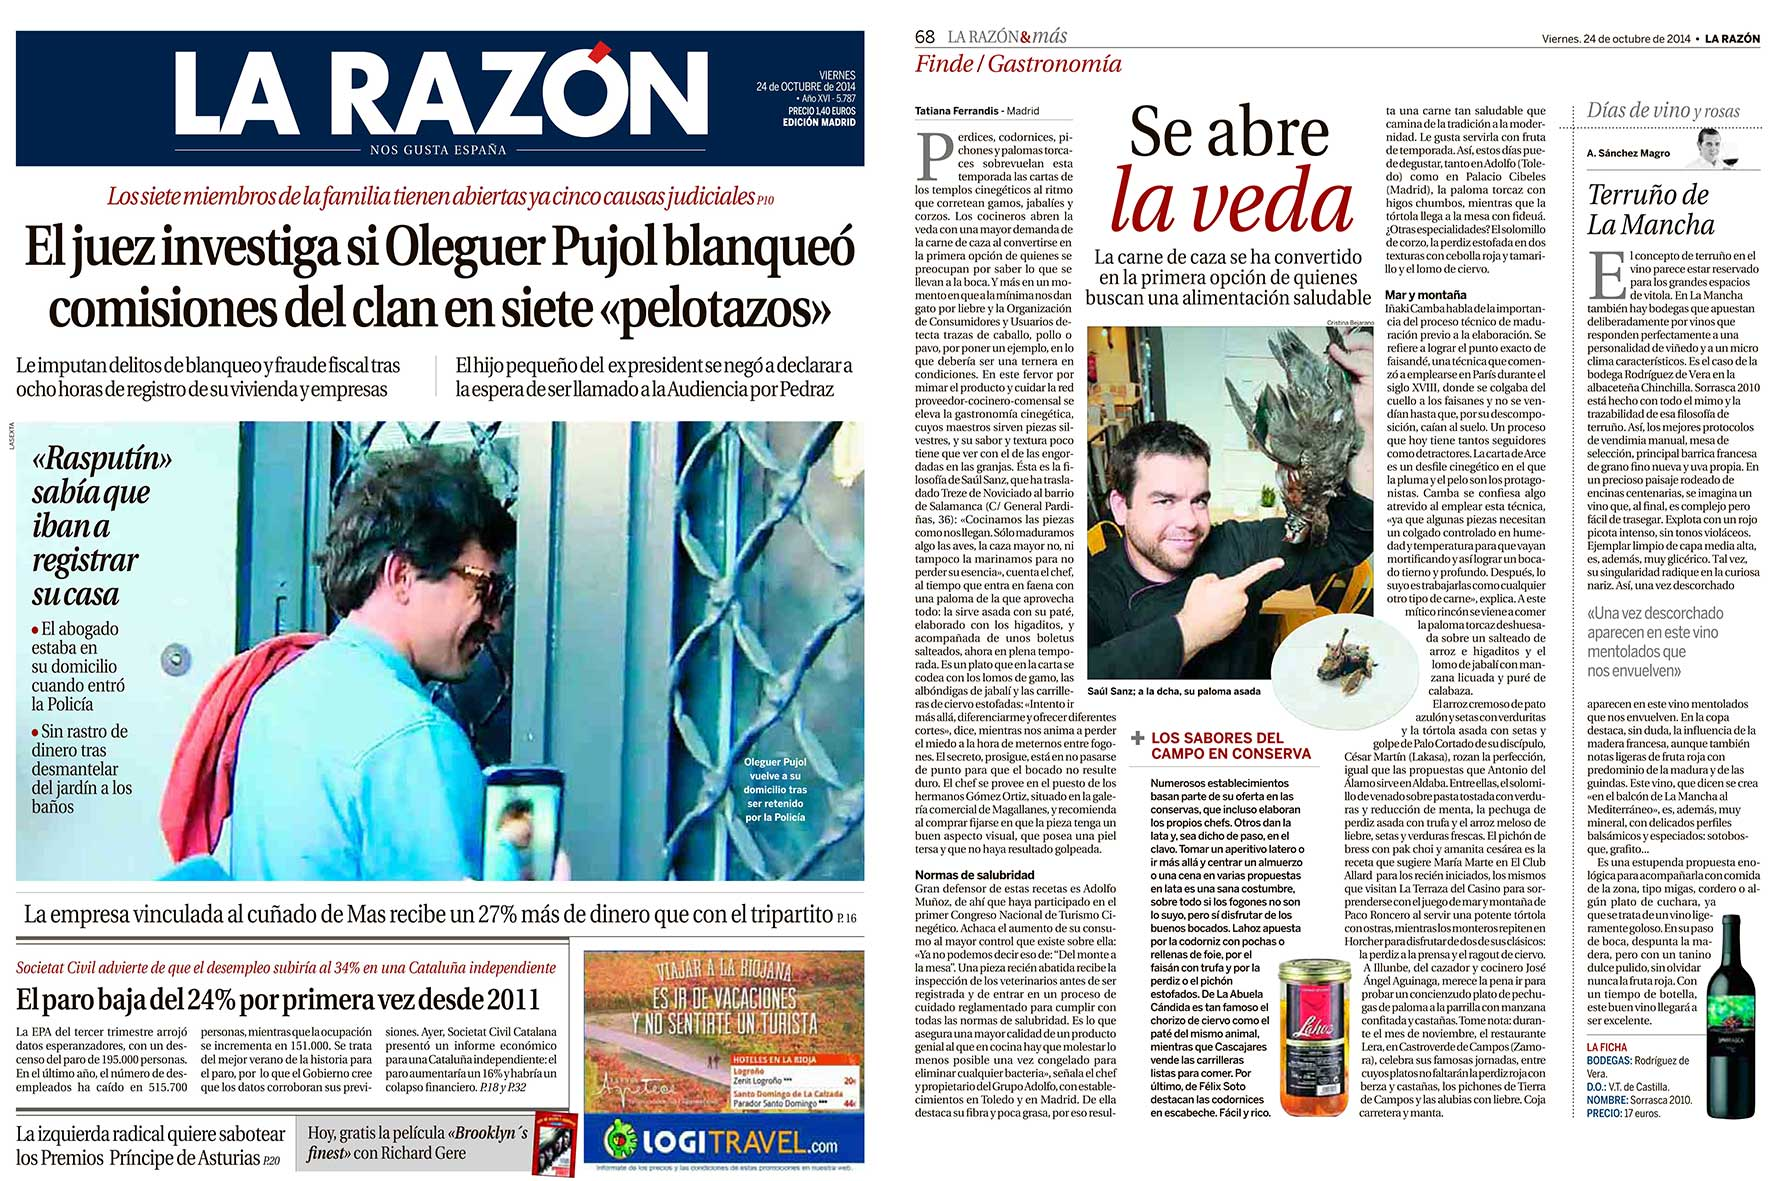 Clipping-gastronomia-Larazon